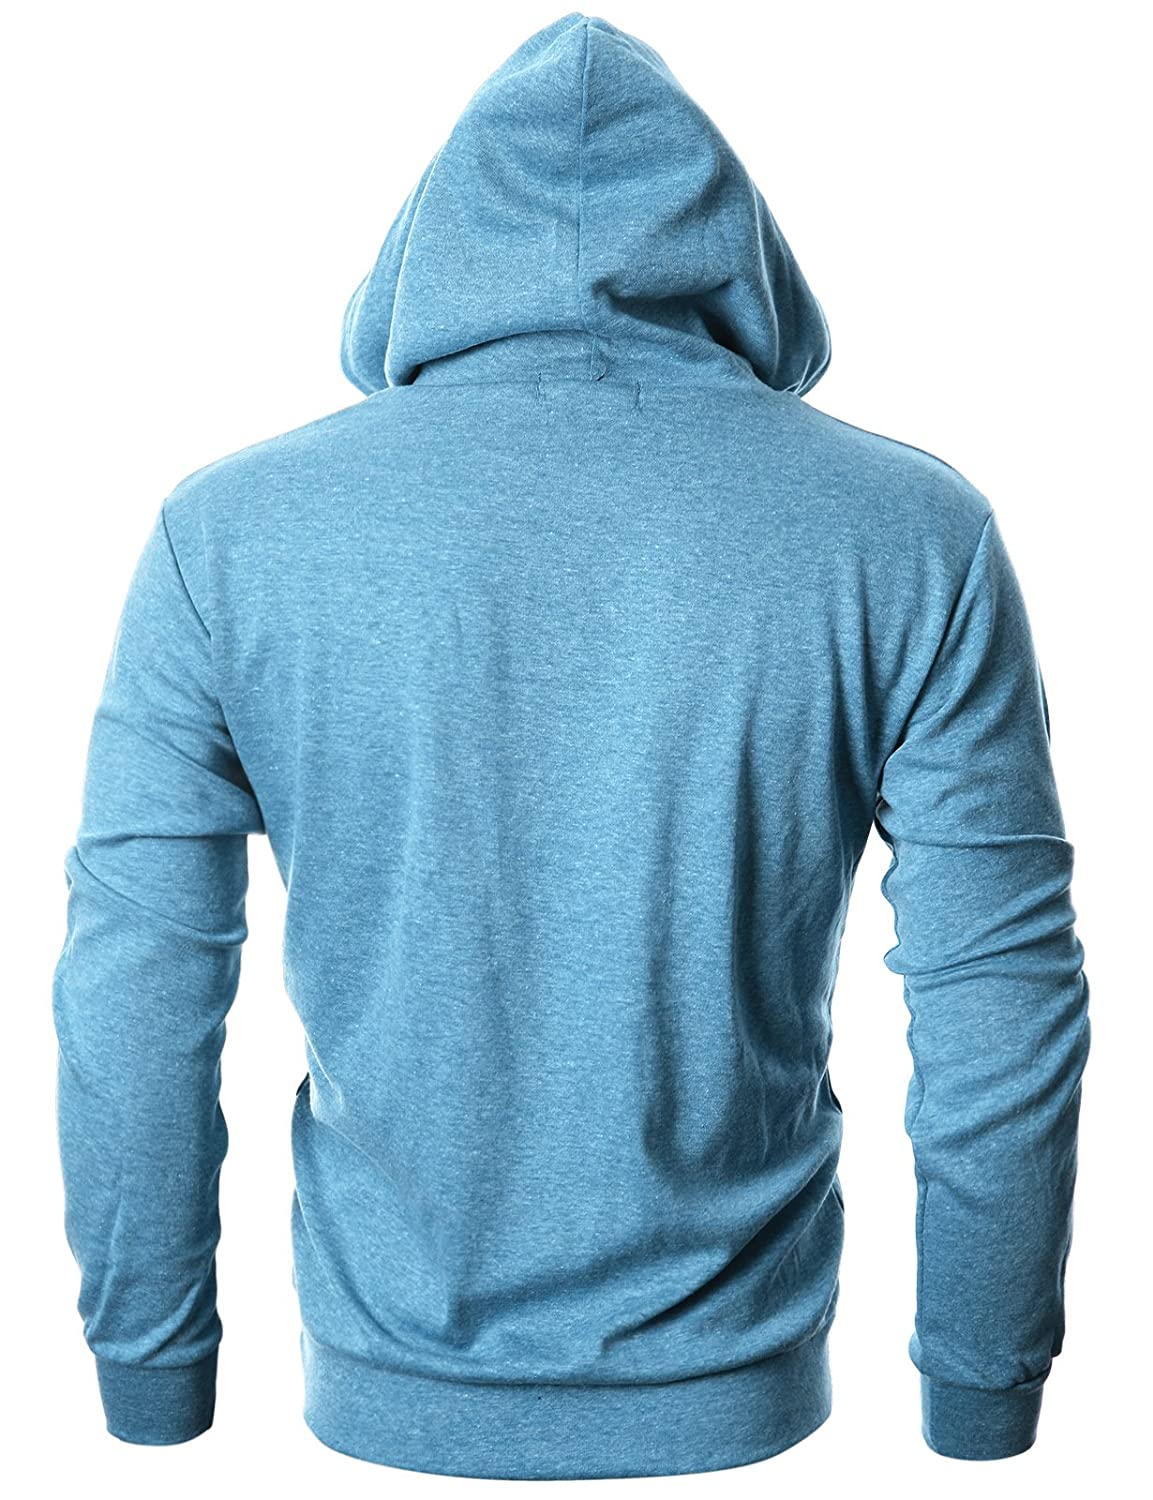 OHOO Mens Slim Fit Long Sleeve Lightweight Echo Knit Hoodie with Kanga Pocket